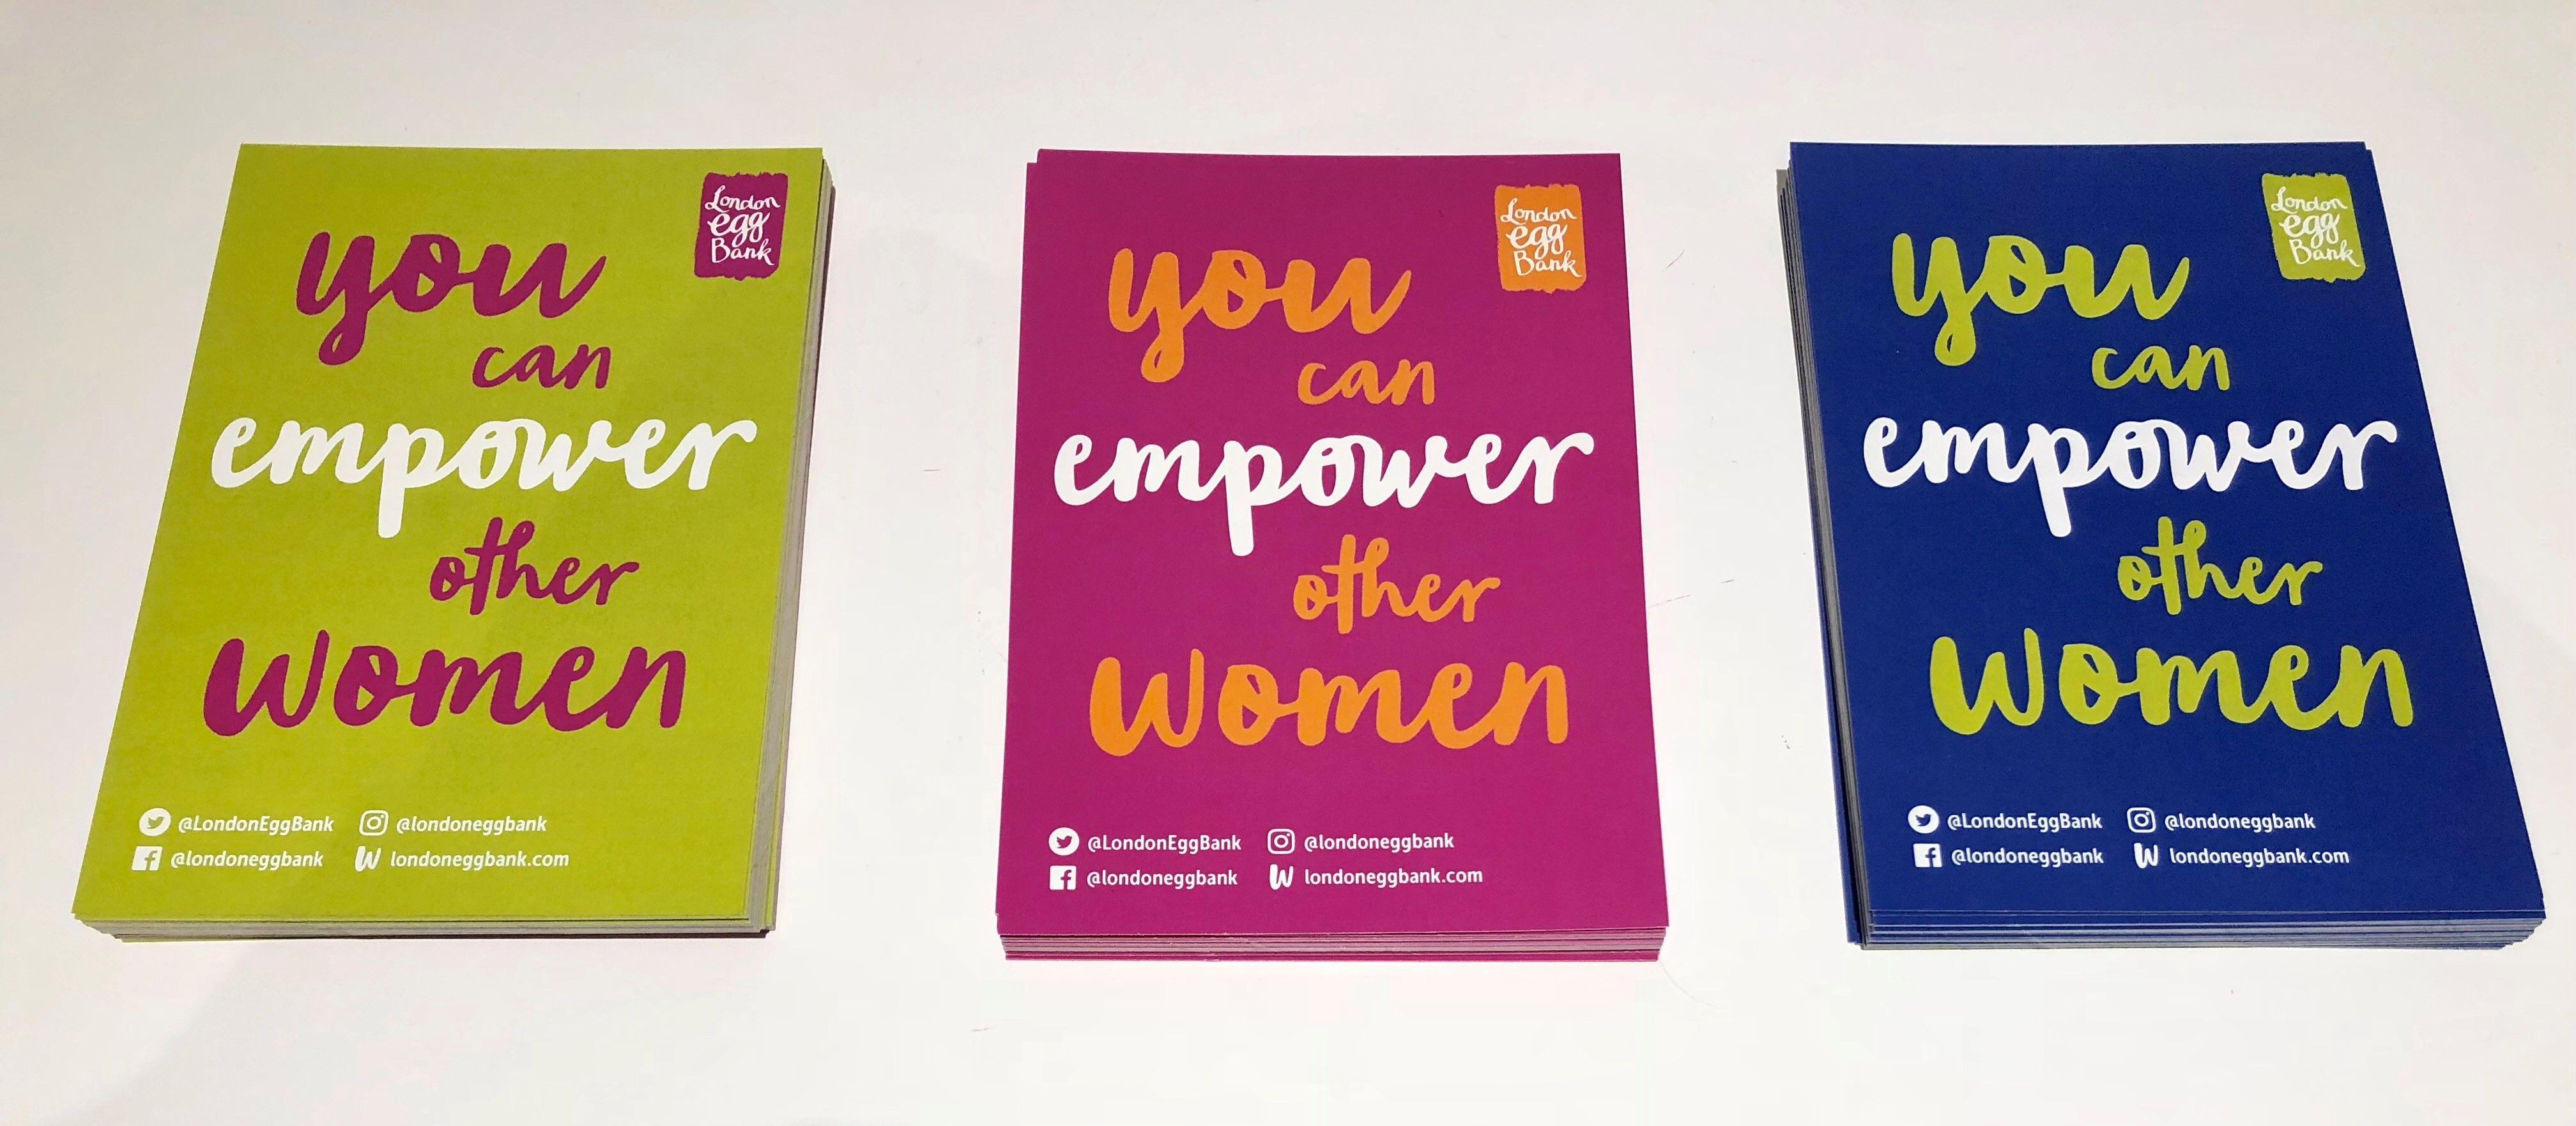 Empower other women a shortage of donors in the uk means